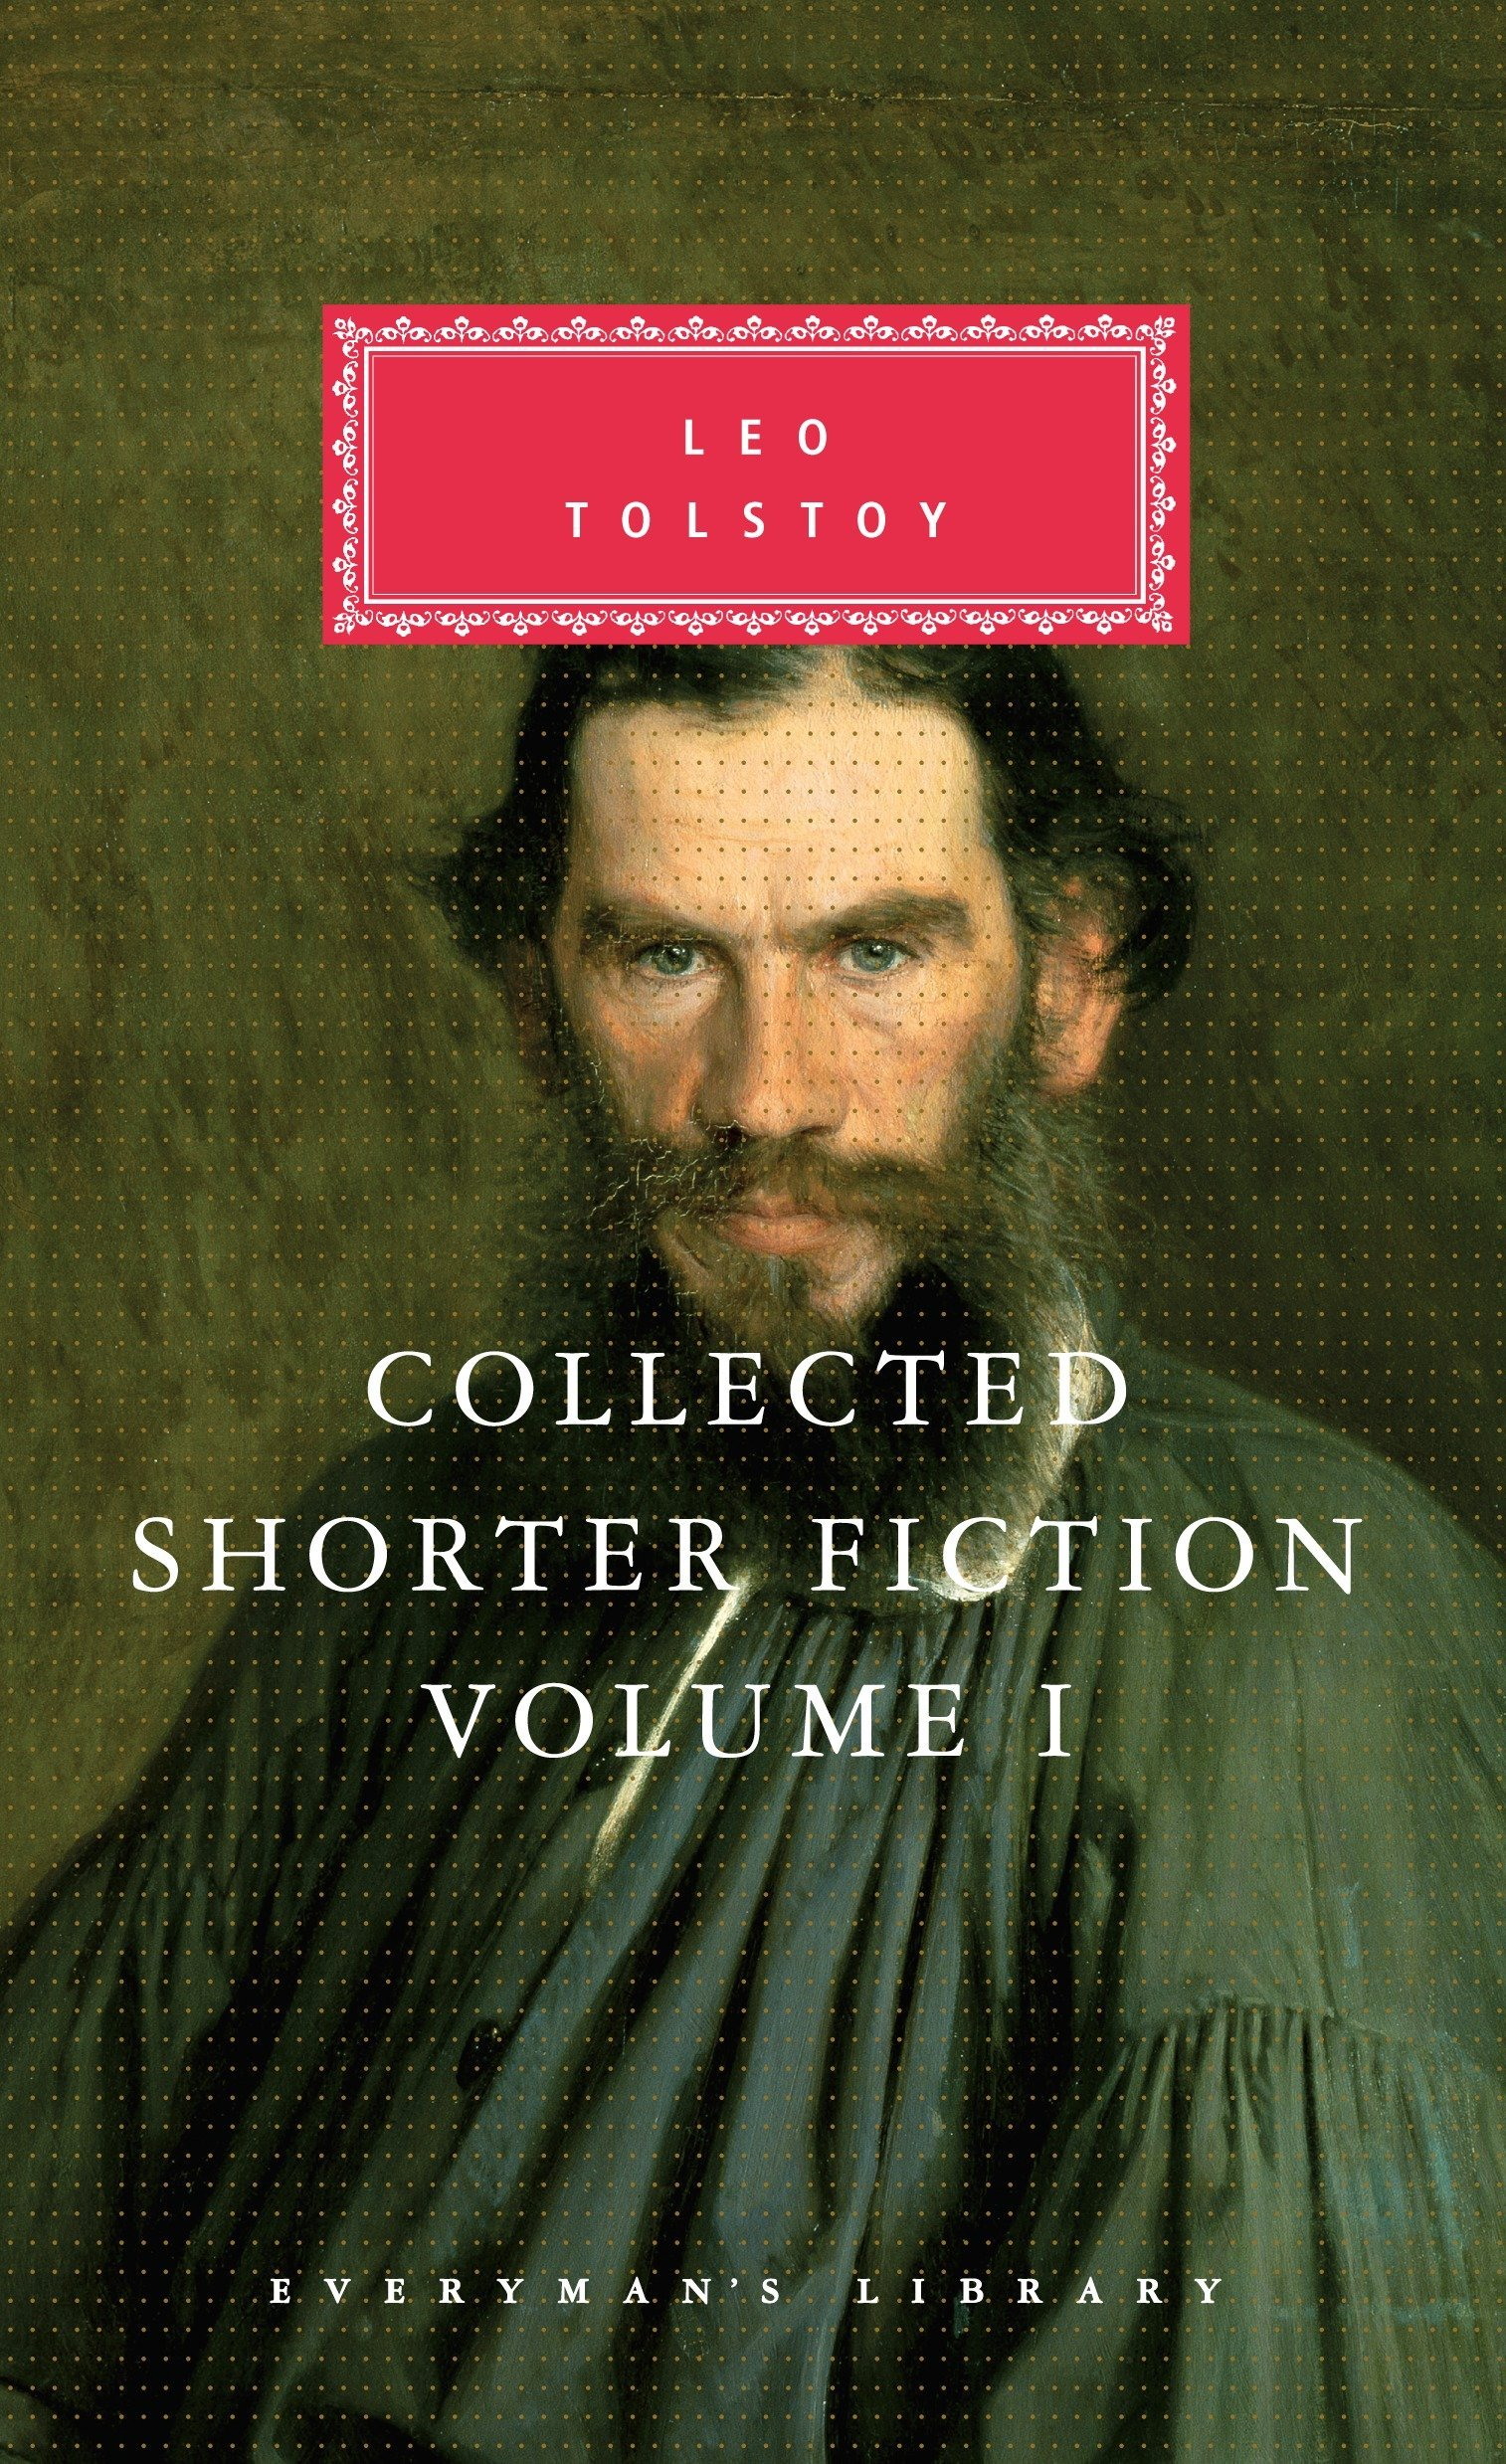 Collected Shorter Fiction: Volume 1 (Everyman's Library) pdf